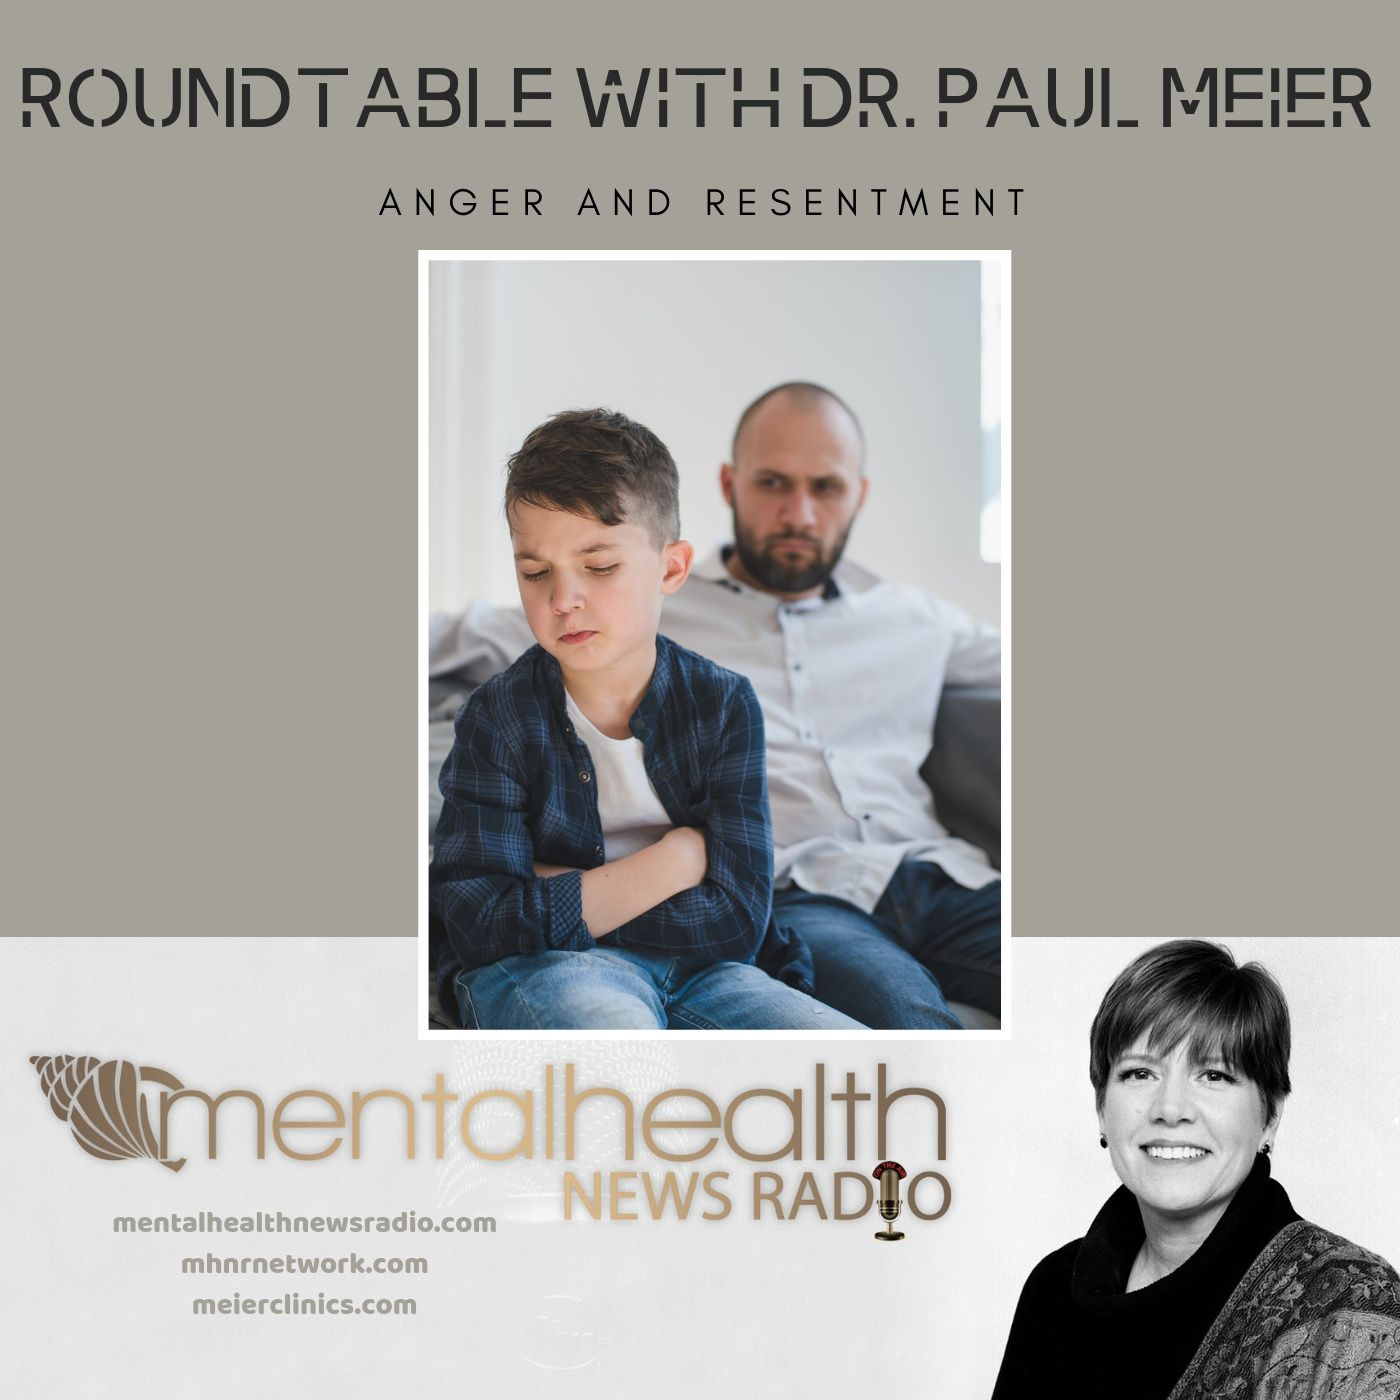 Mental Health News Radio - Roundtable with Dr. Paul Meier: Anger and Resentment